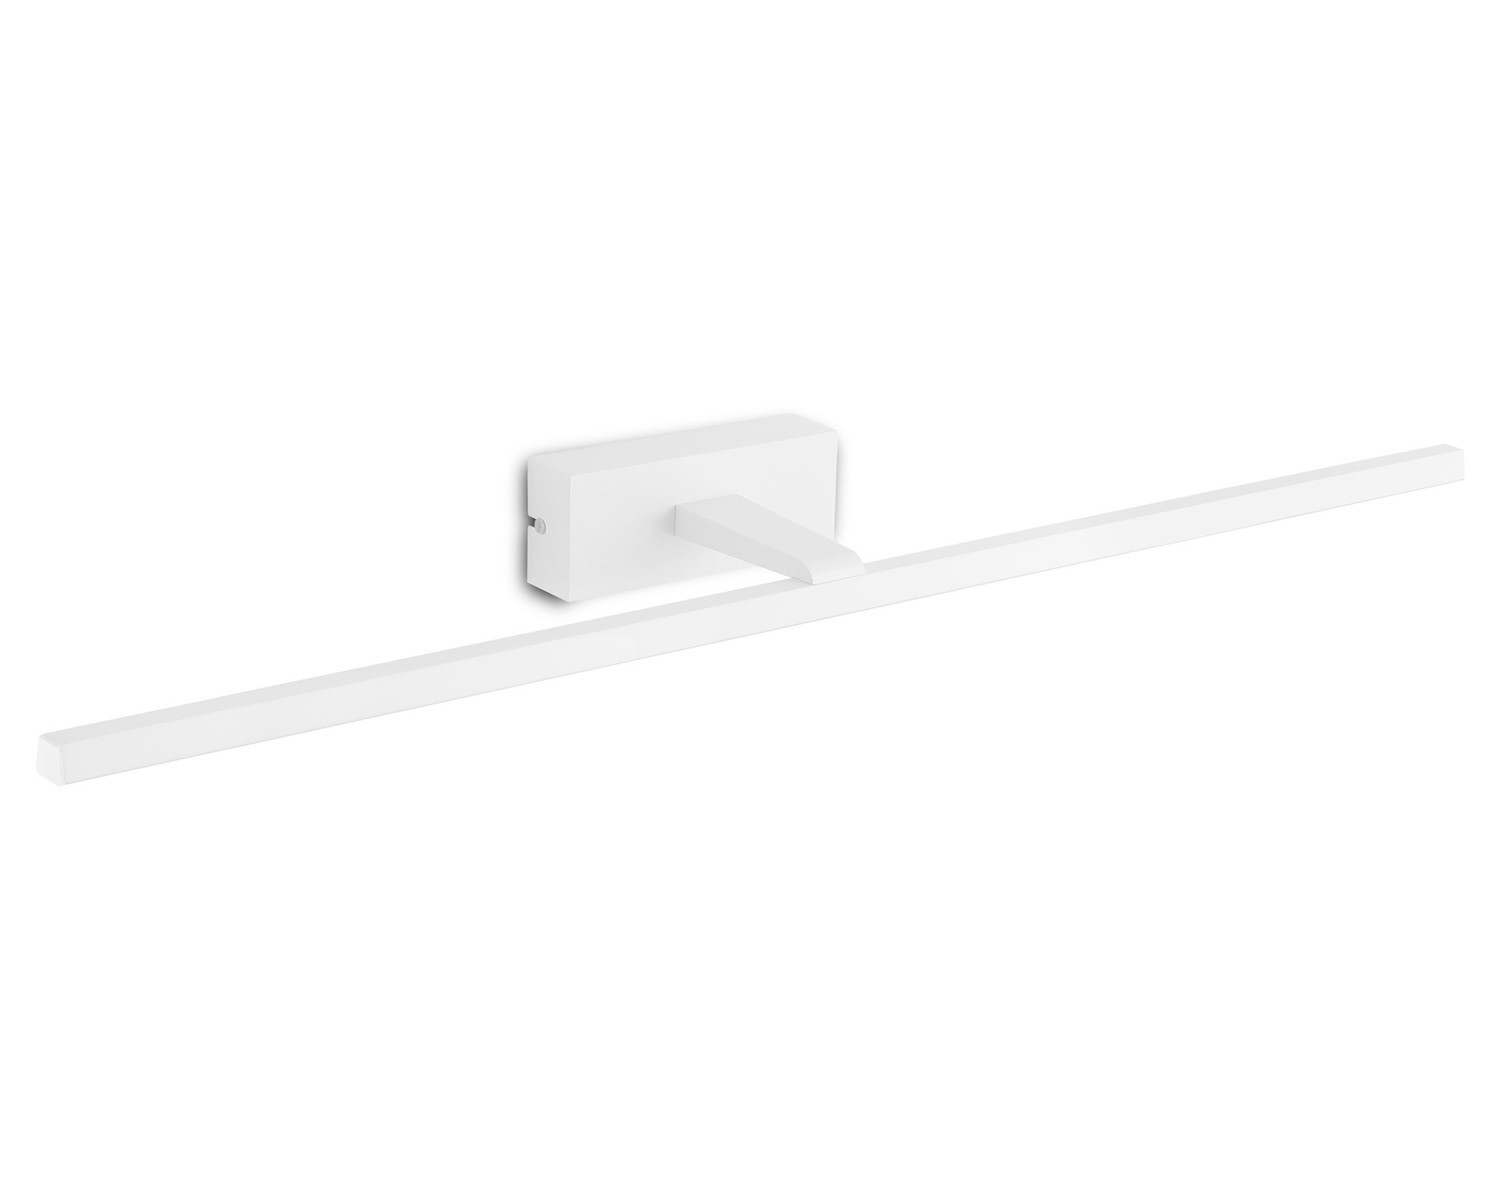 Yaque Picture/Wall Light, 12W LED, 4000K, 840lm, White, IP44